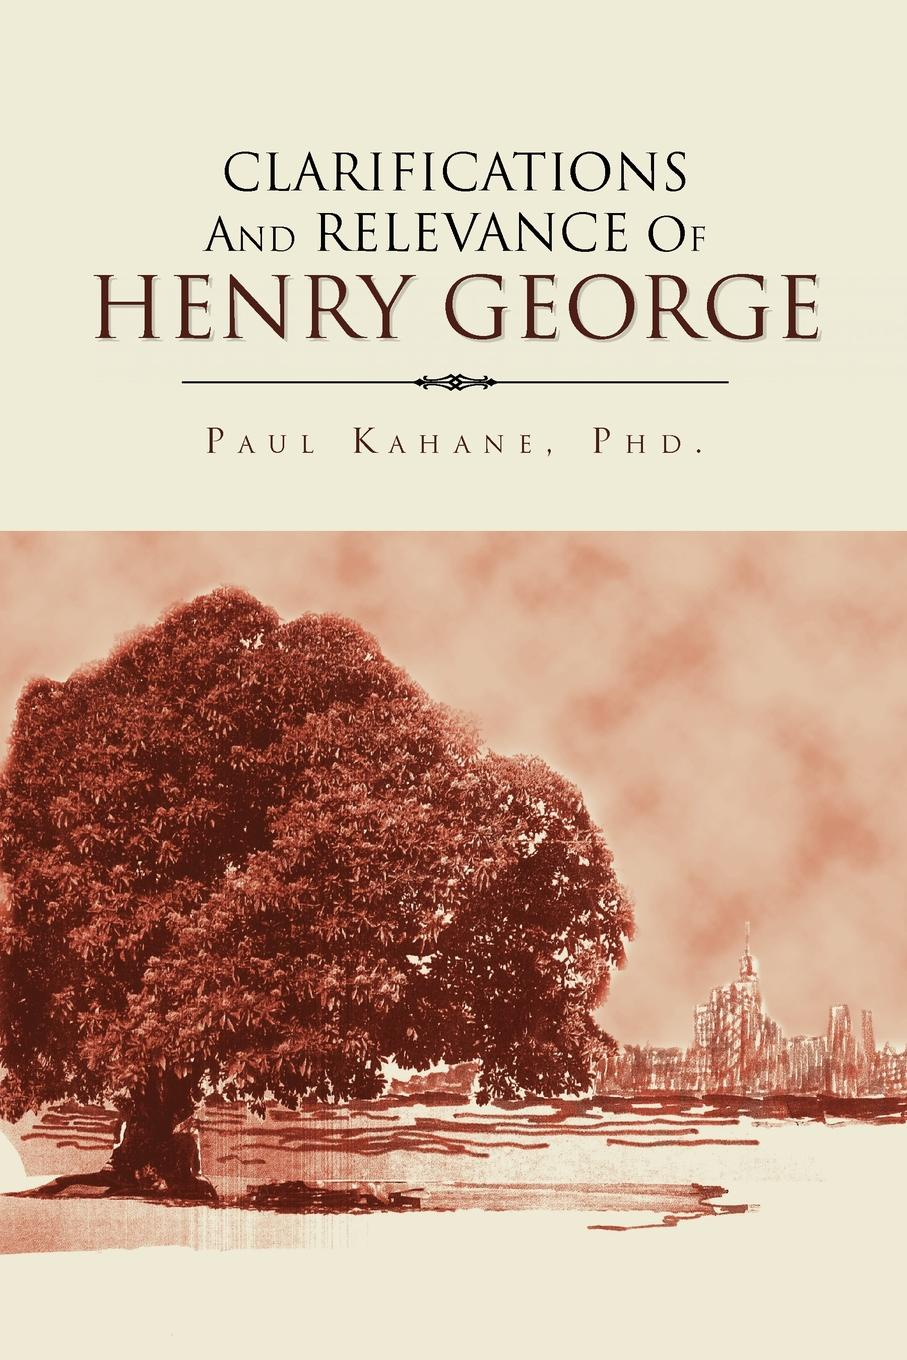 Paul Phd Kahane Clarifications and Relevance of Henry George george e marcus the relevance of ethnography today